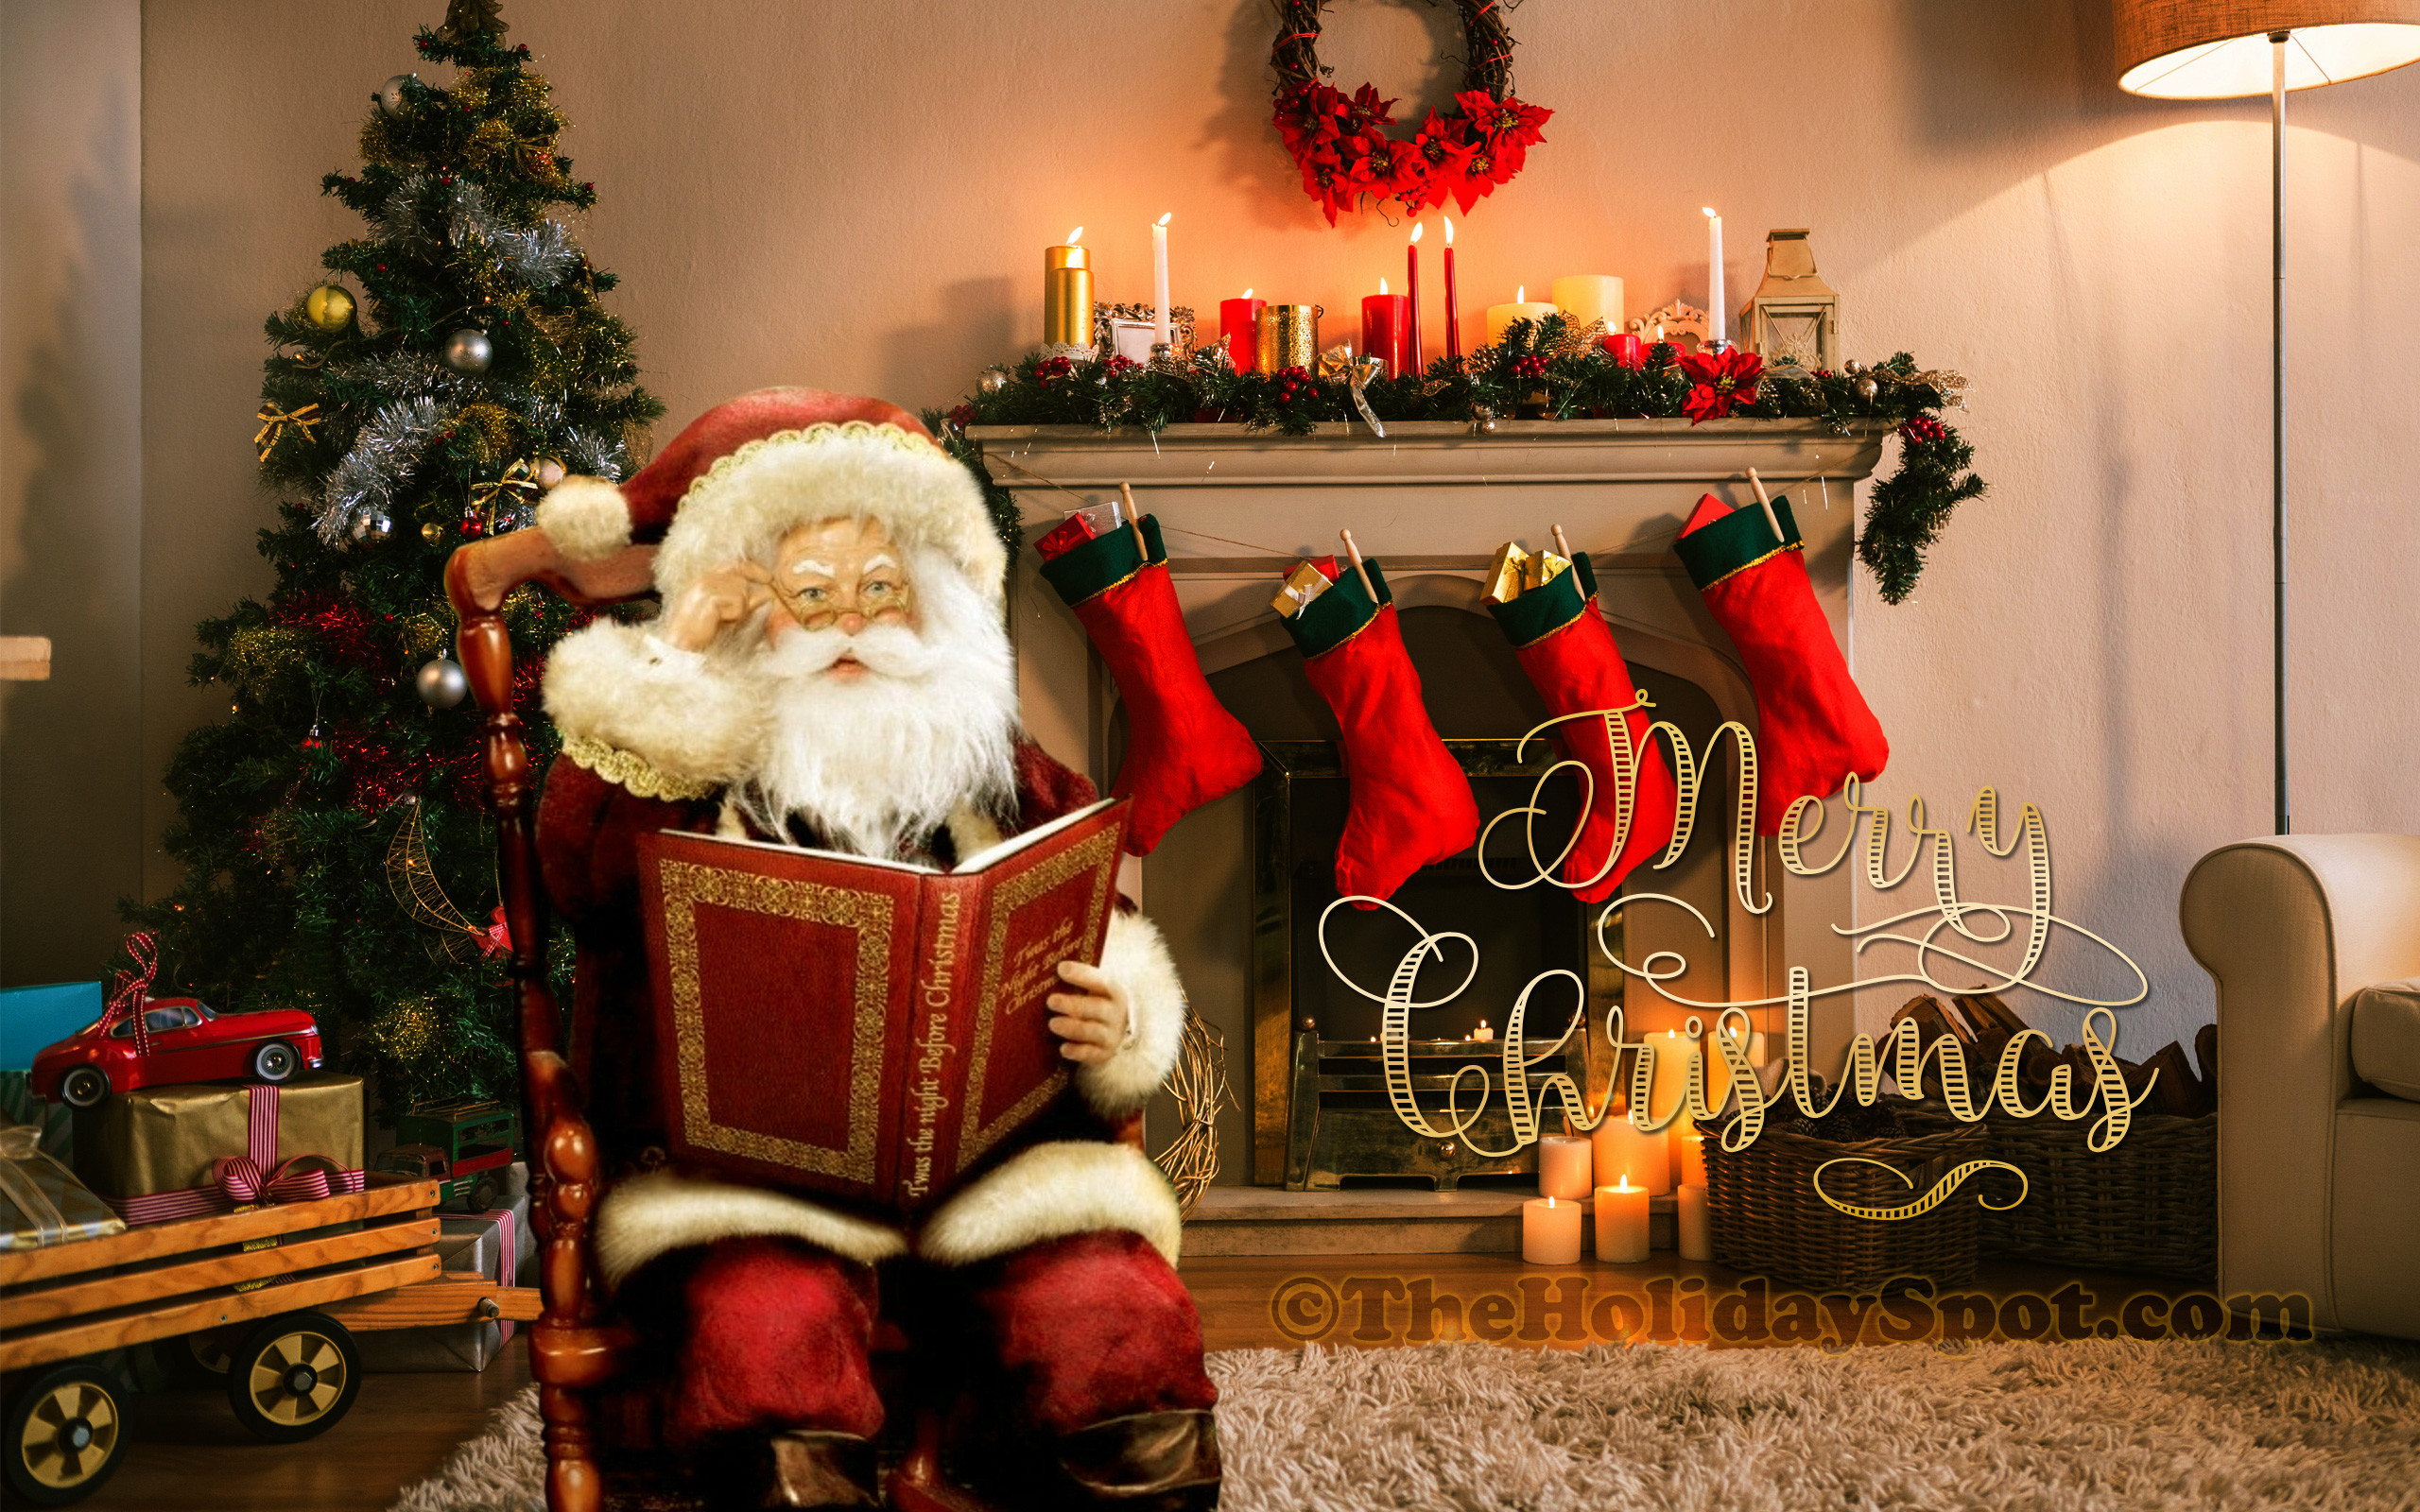 Wallpaper – Merry Christmas wishes from Santa